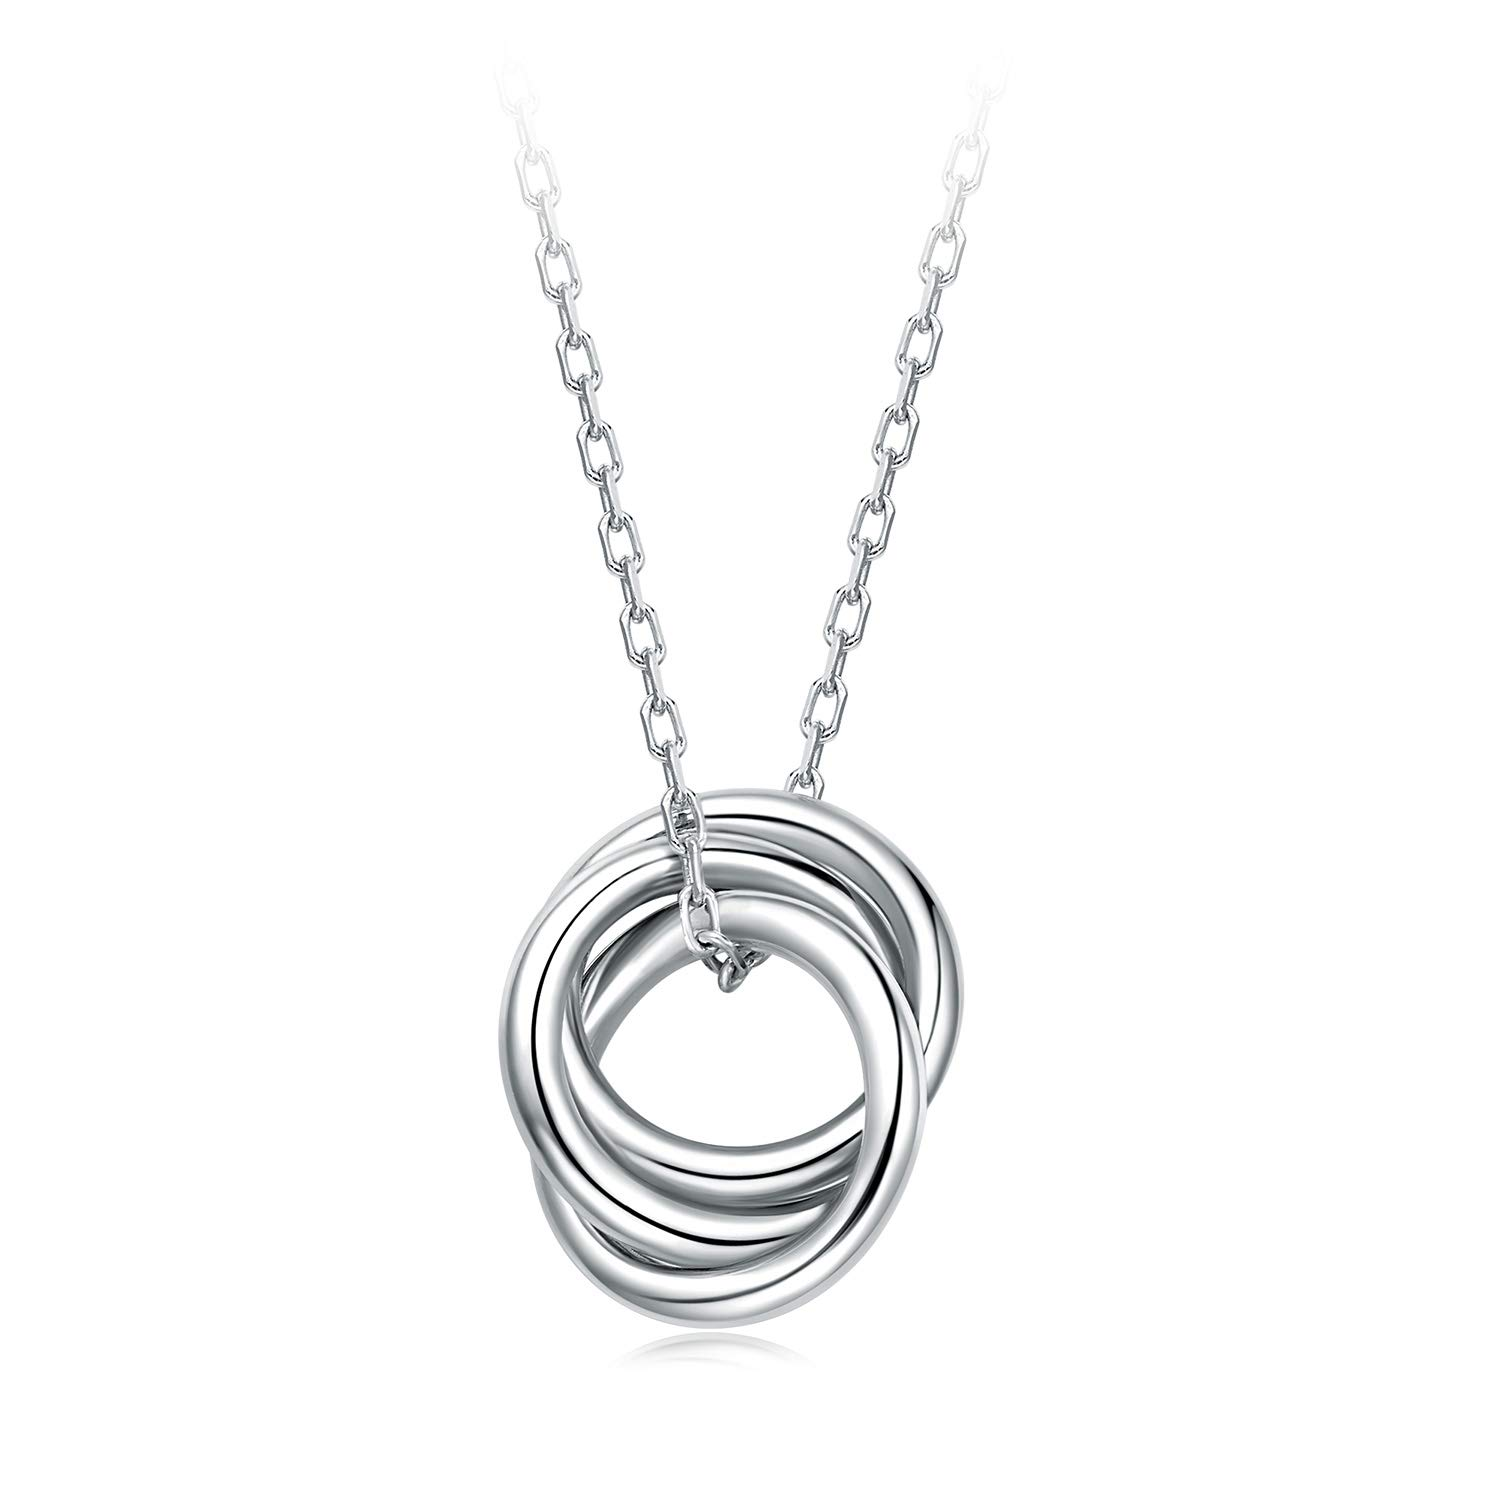 BlingGem Triple Infinity Interlocking Circle Ring Trinity Pendant 925 Sterling Silver Plated White Gold Necklace for Women Gift for Mother/Wife/Daughter